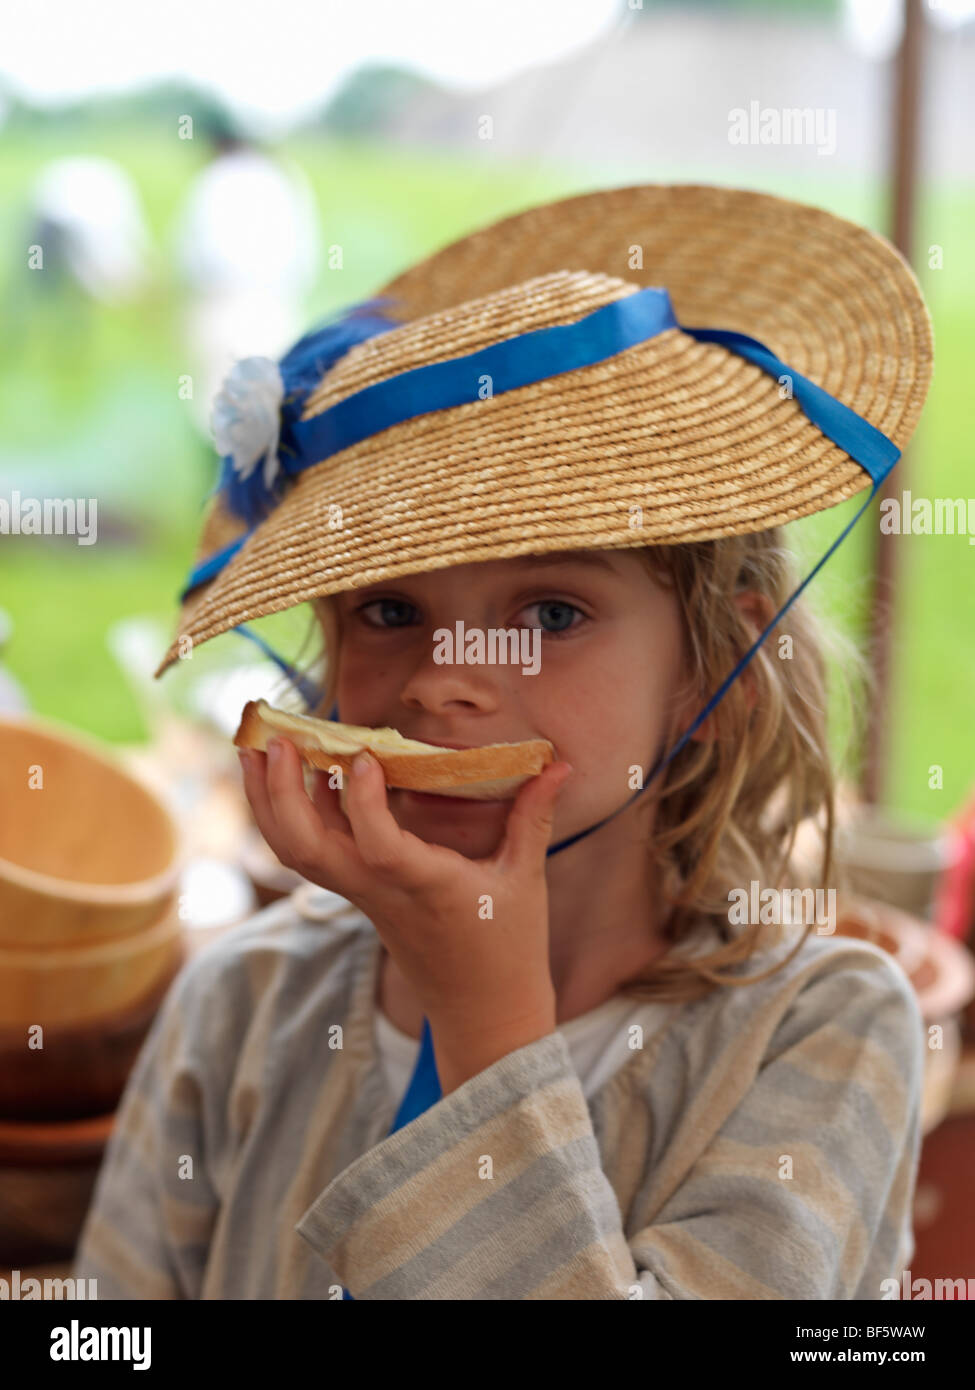 Canada, Ontario, Fort Erie, Old Fort Erie, War of 1812 reenactor in period costume. young girl eating buttered bread - Stock Image